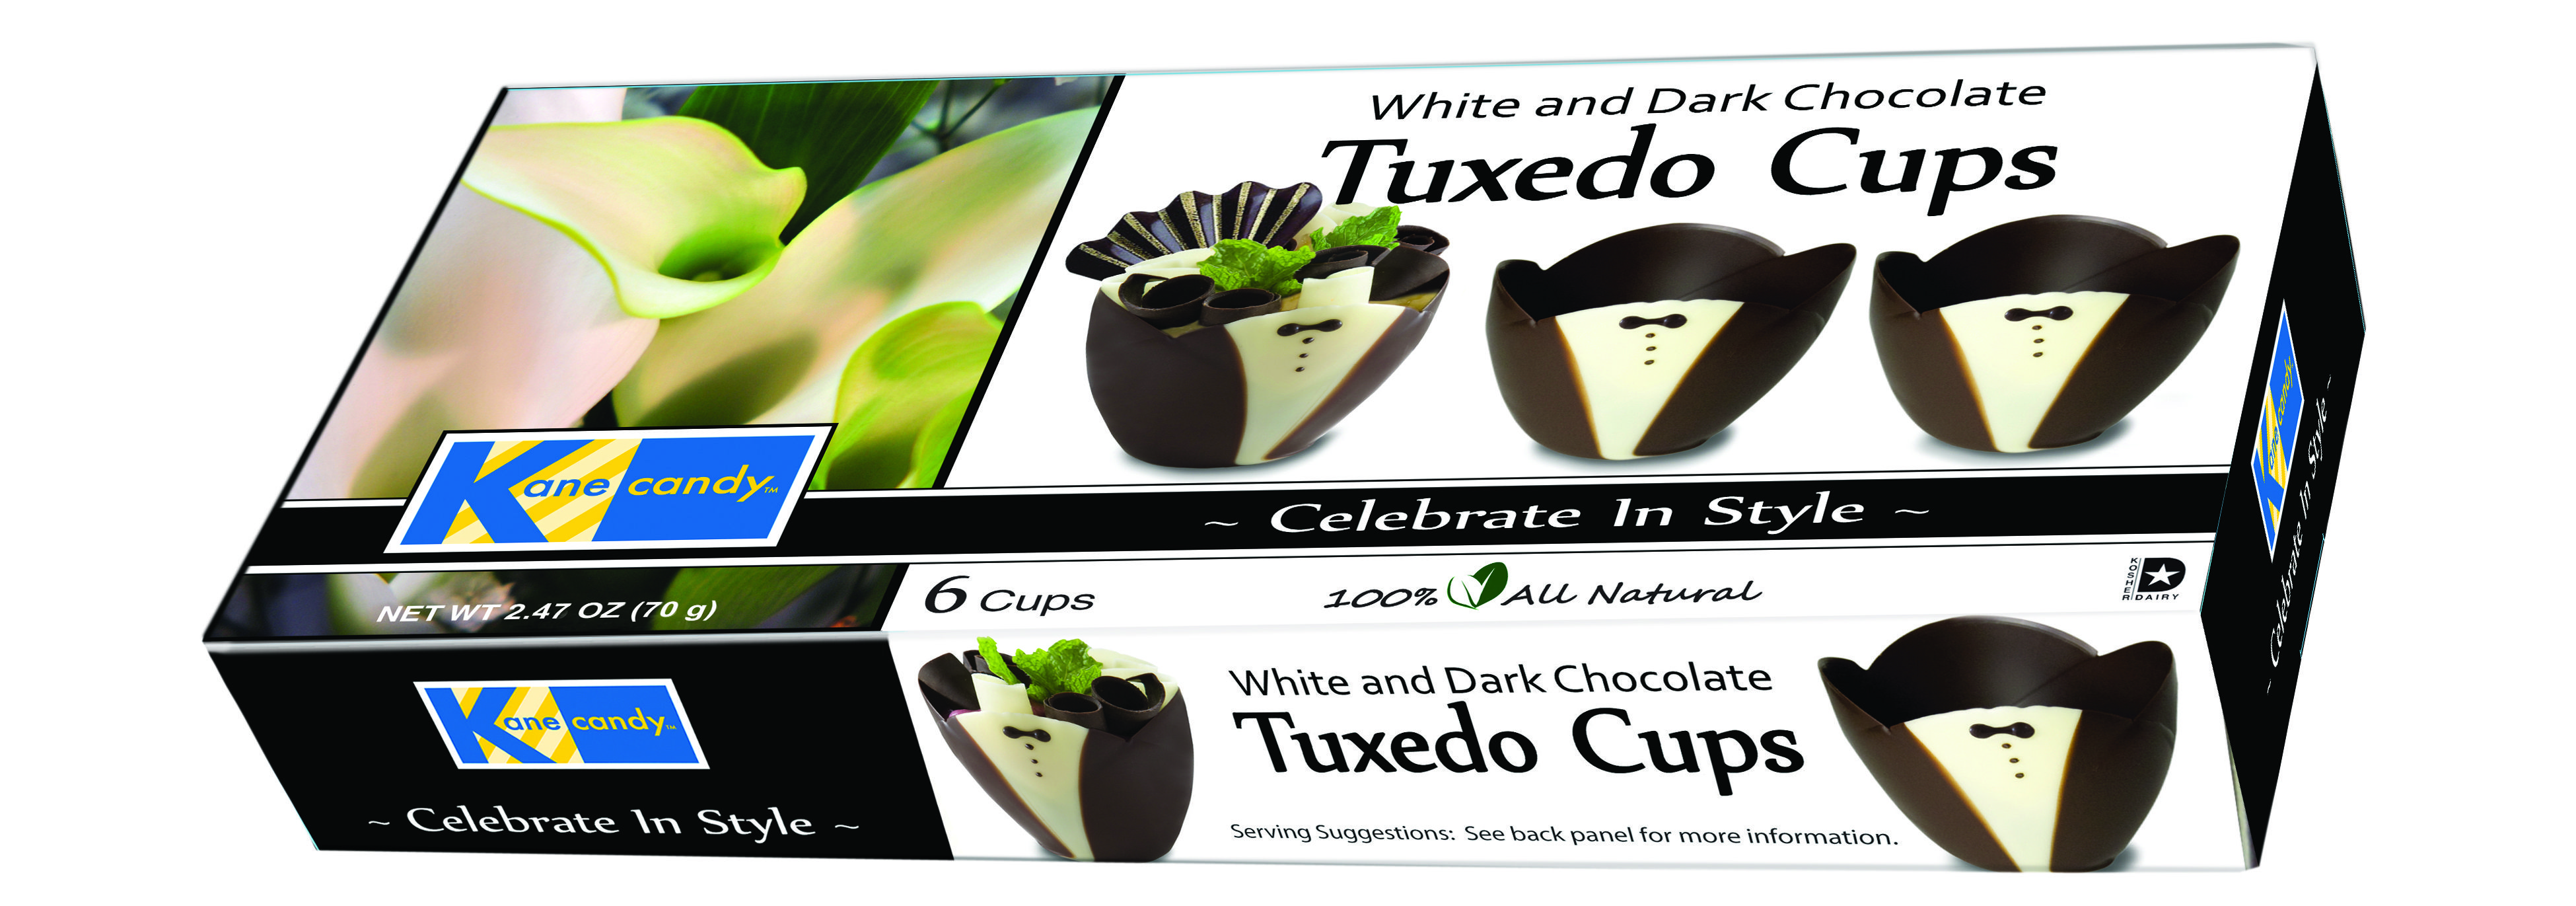 Kane Candy Chocolate Tuxedo Cups  6 cups in retail package   Fun, chocolate cups to fill & serve at any party or special event!  KaneCandy.com